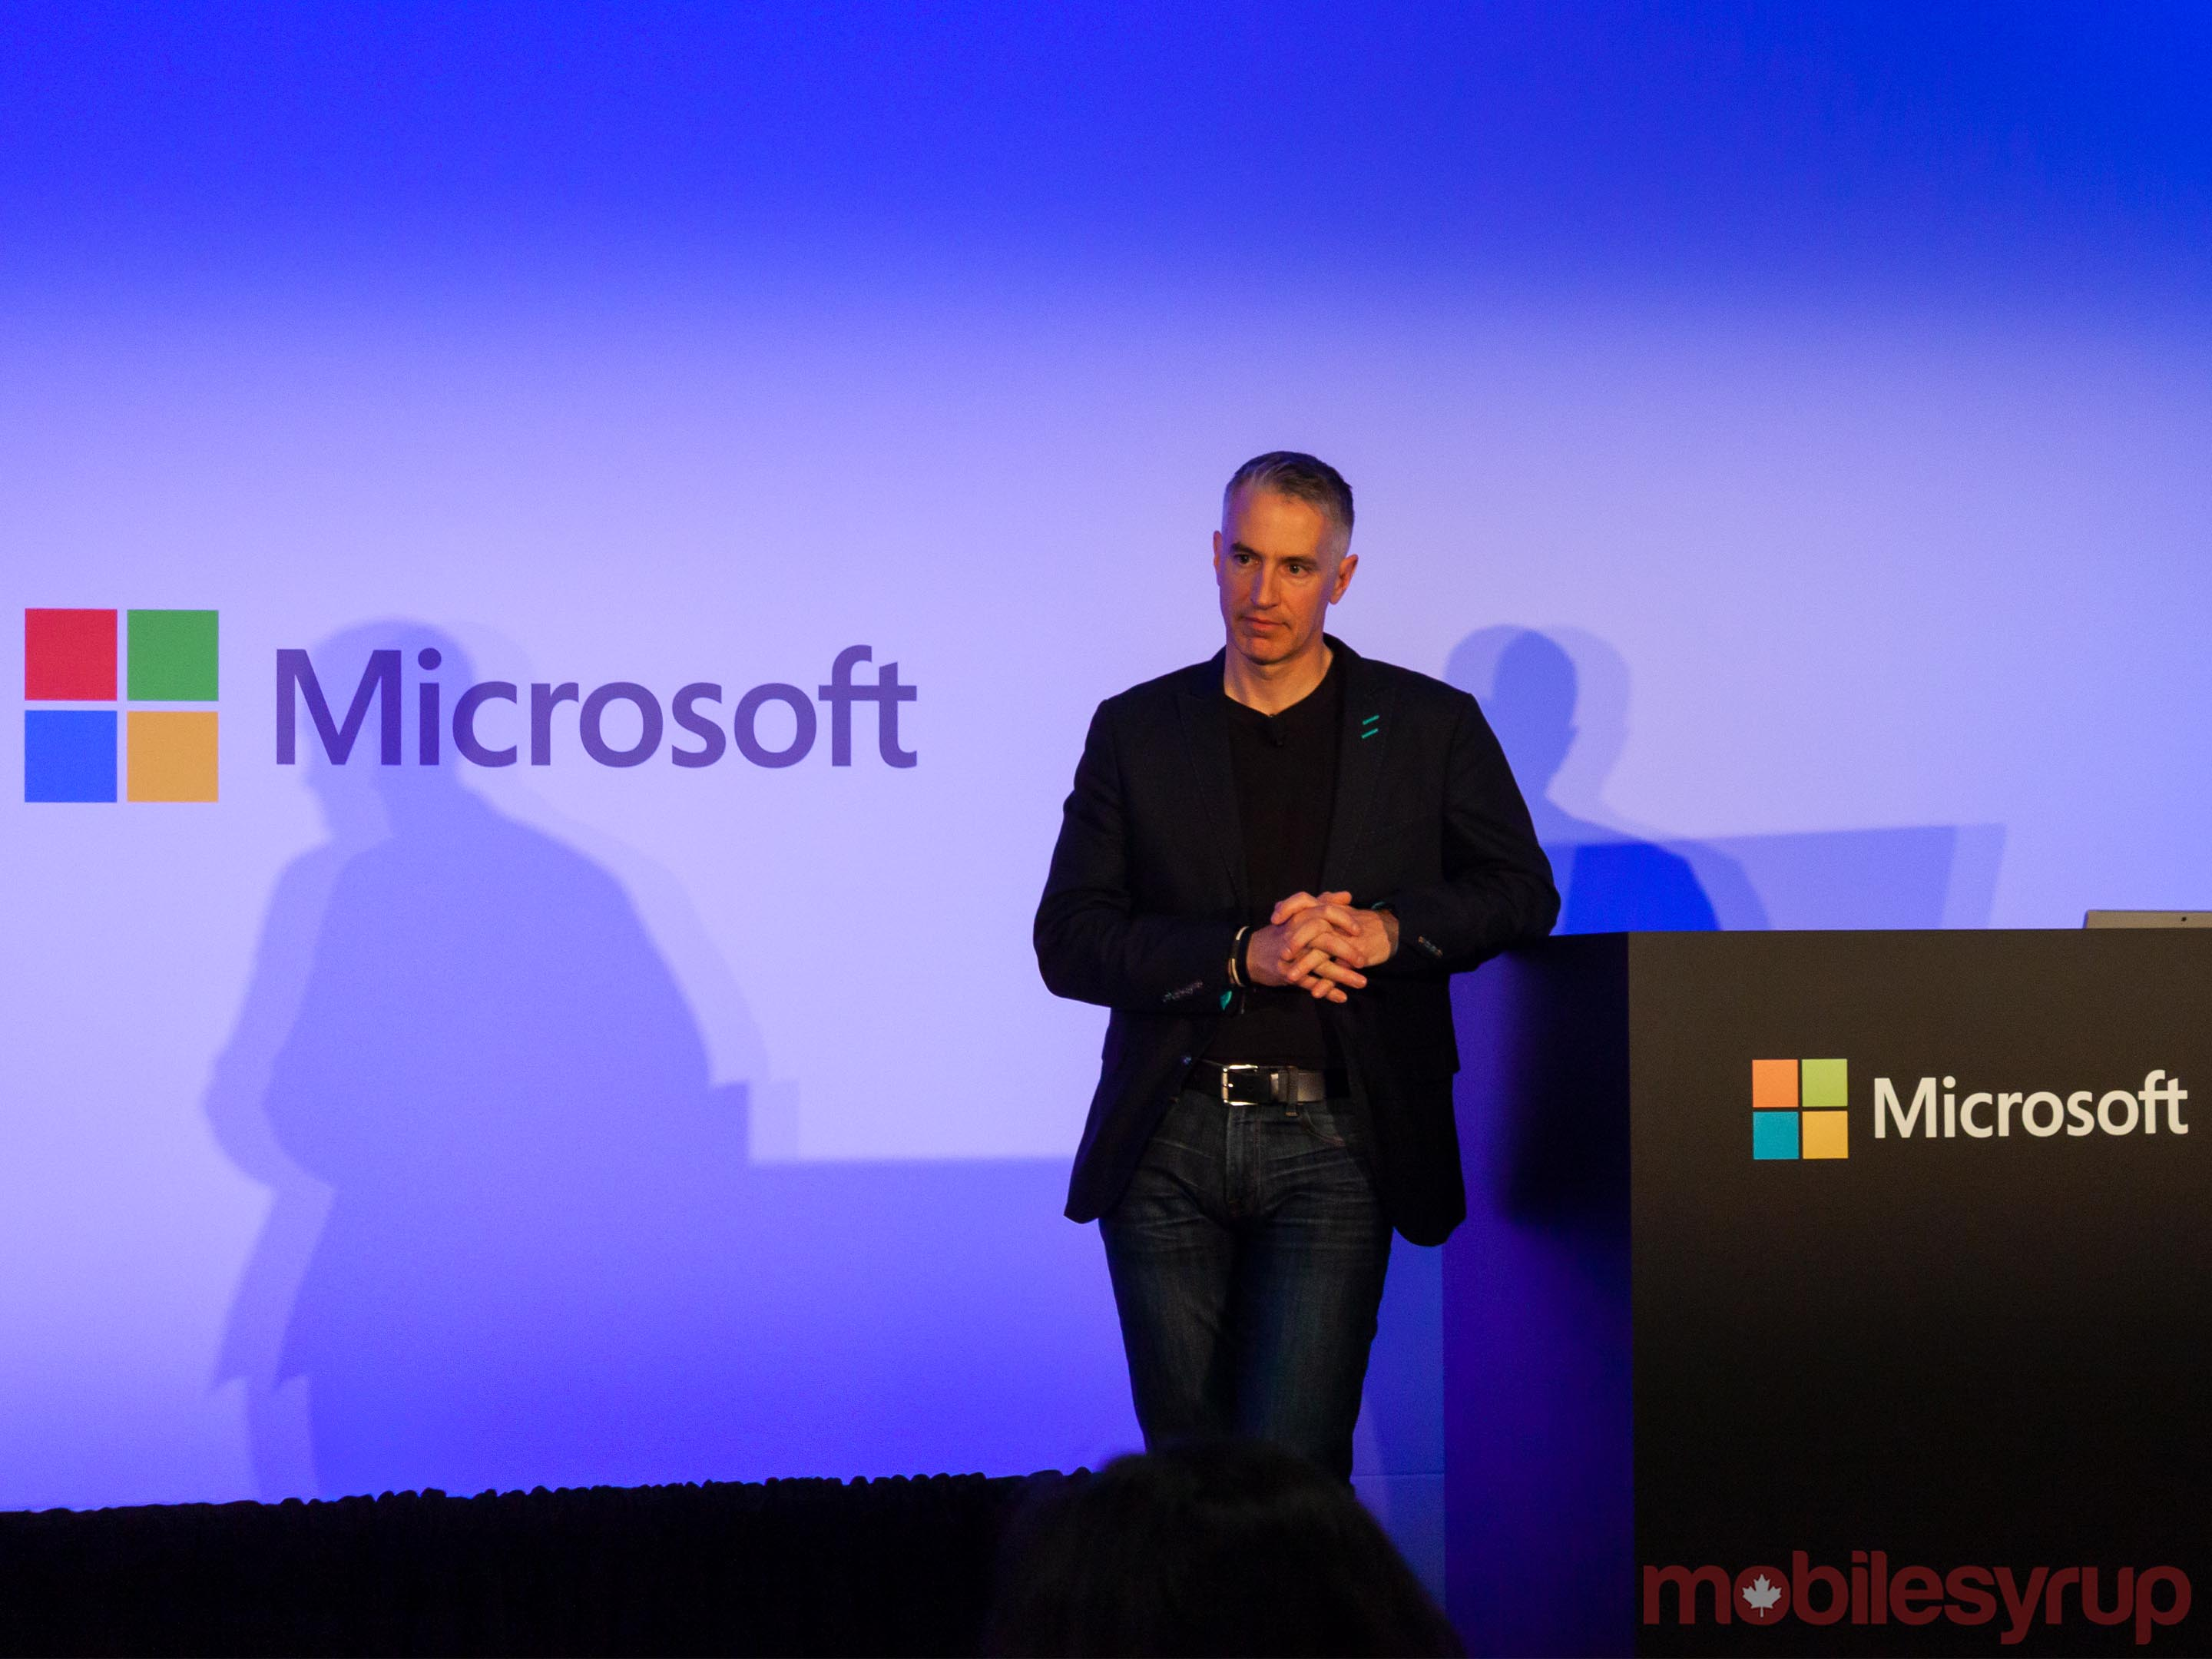 Microsoft's Tim O'Brien